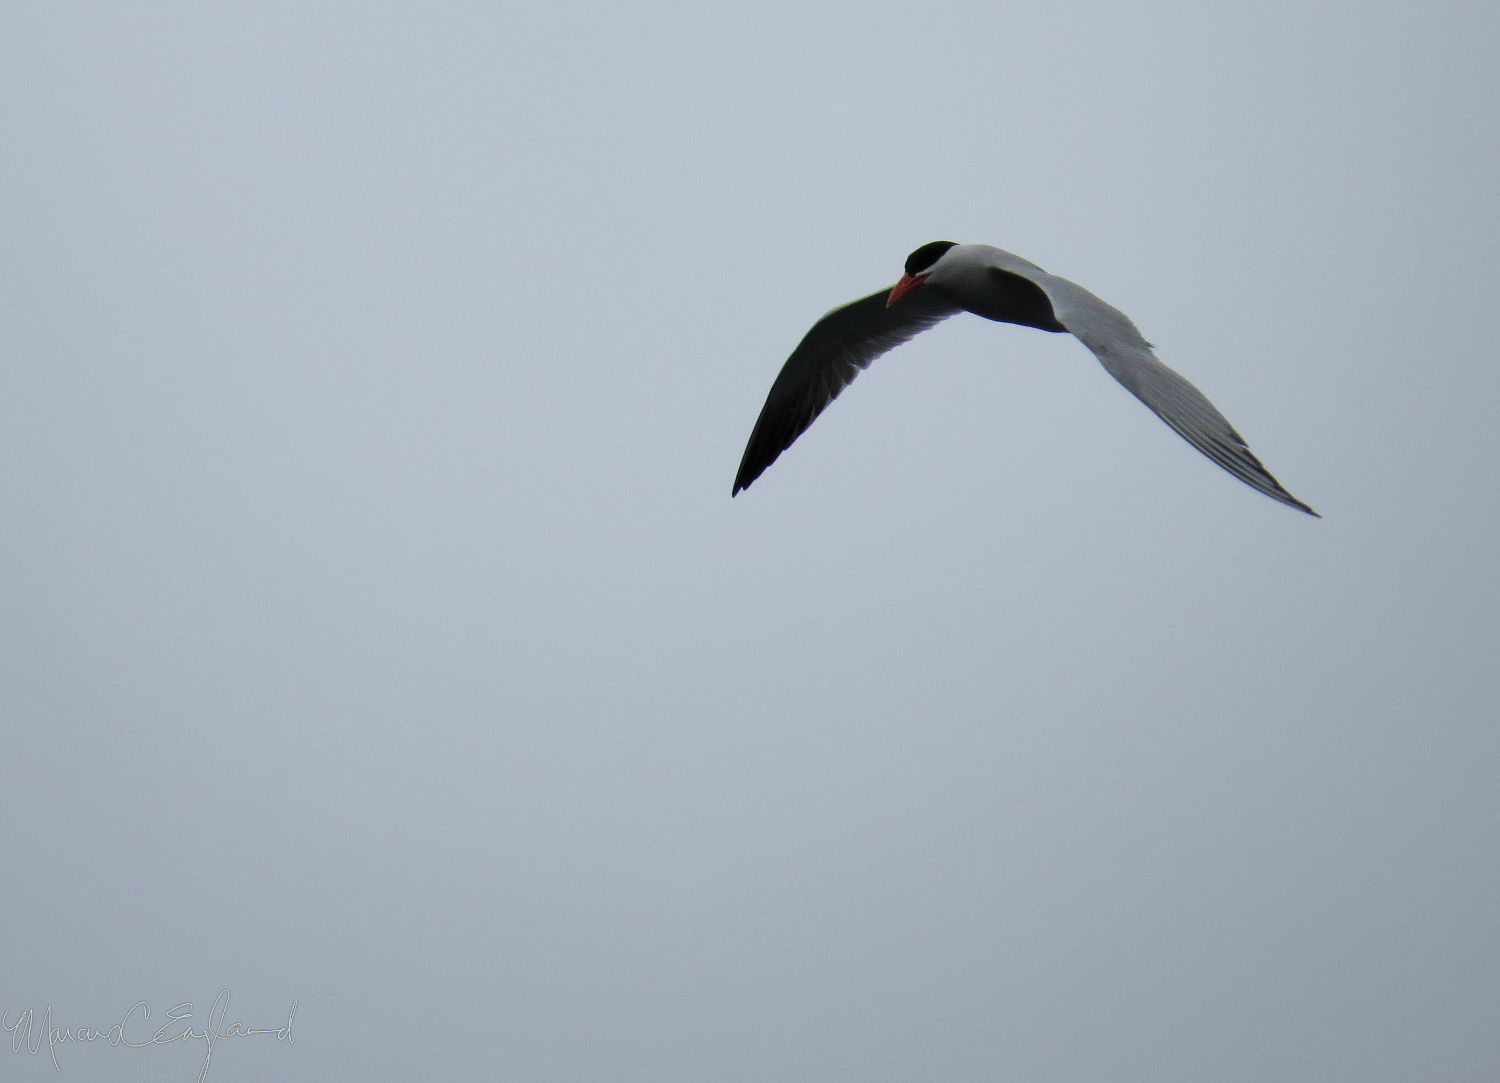 A Caspian Tern flies over the Ballona Channel. Photo by Marcus C. England.